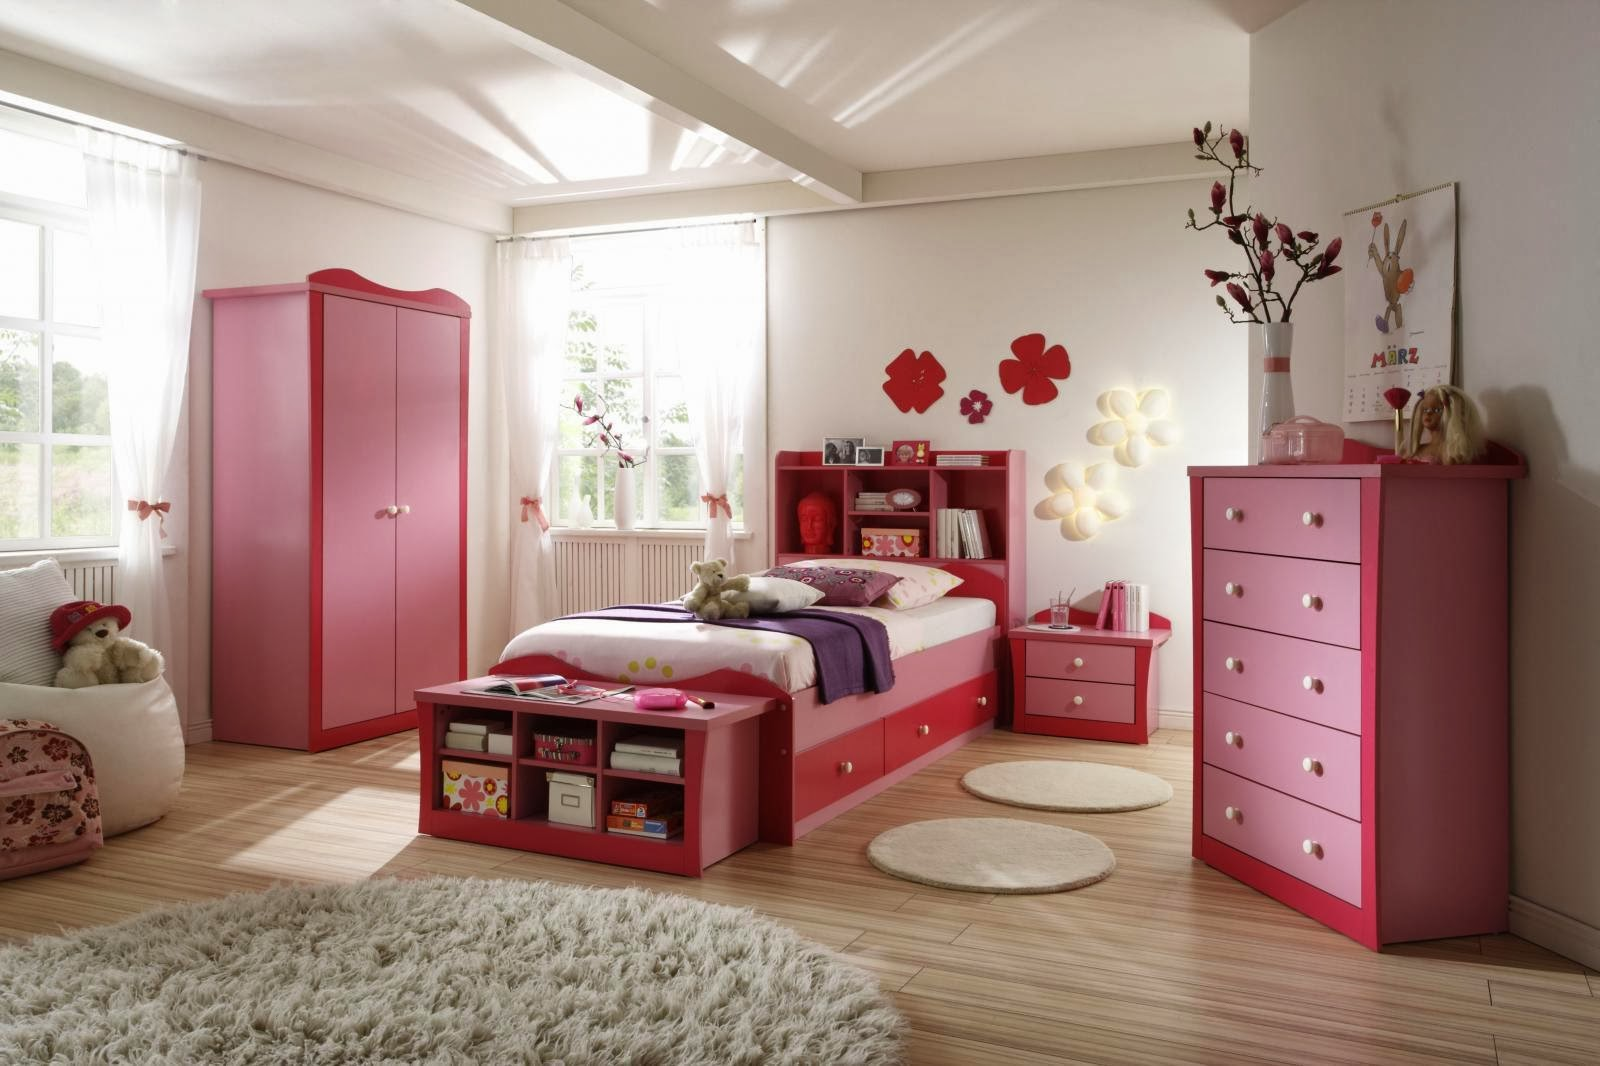 Home Decorating Interior Design Ideas Pink Bedding for a Big or Little Girls Bedroom